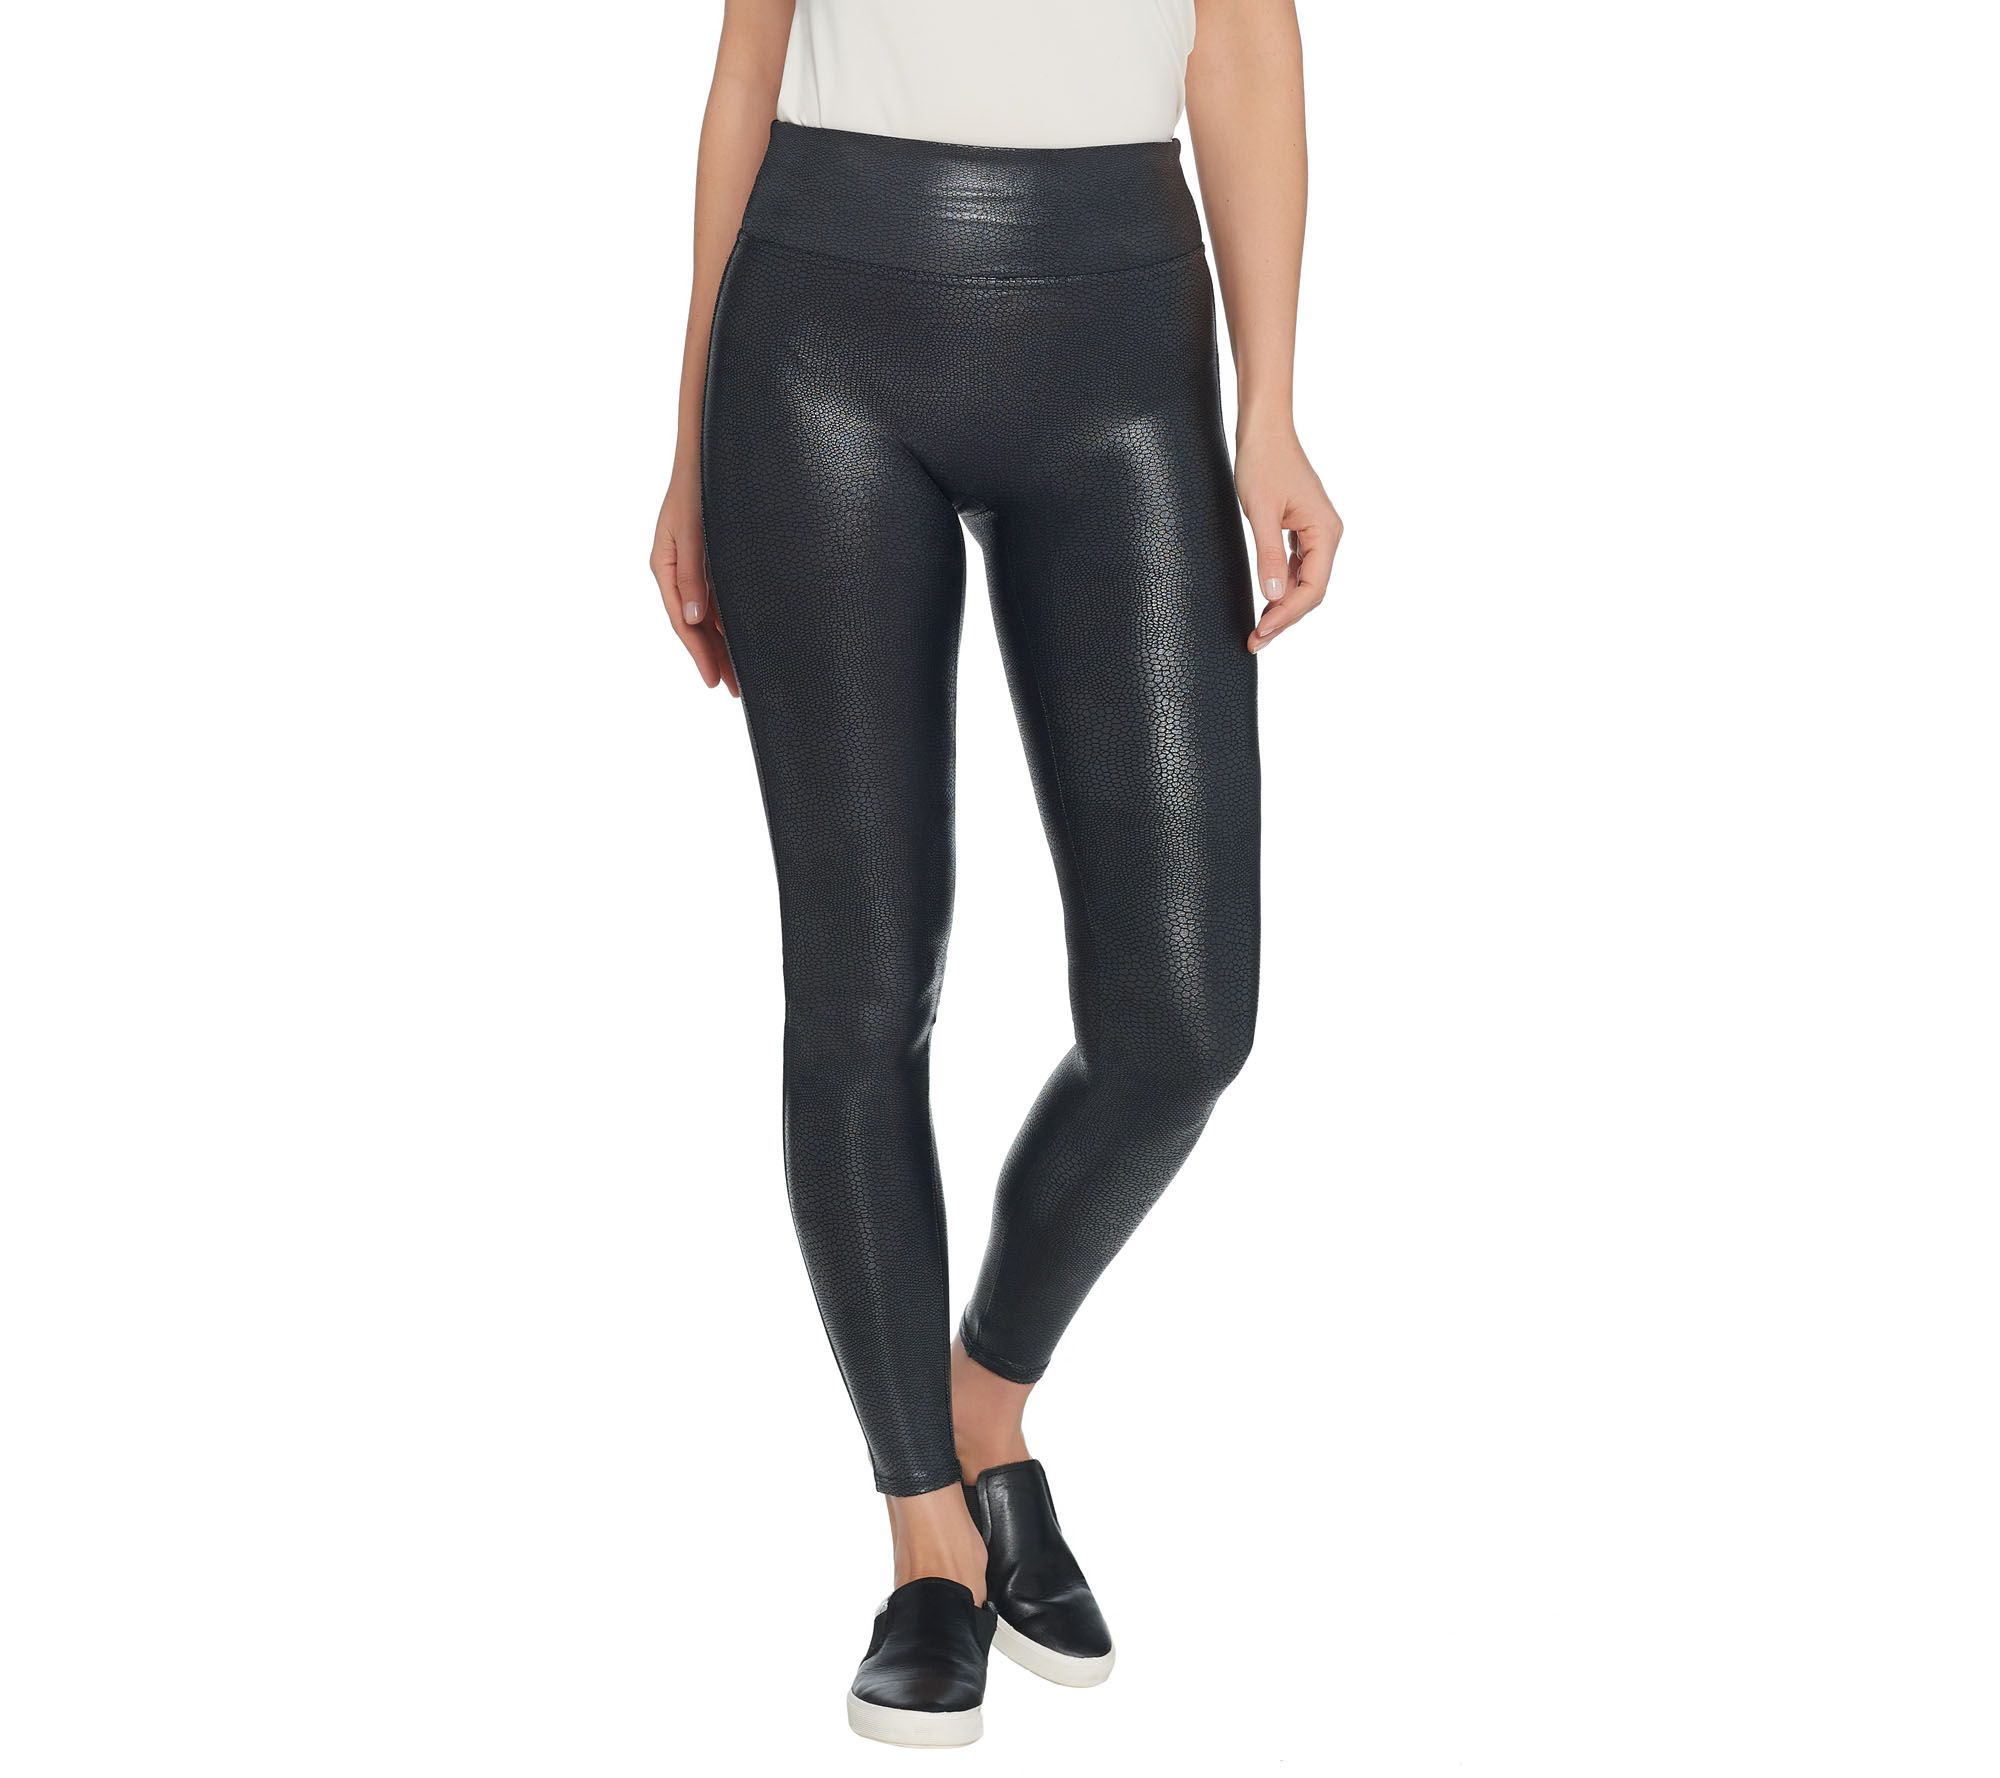 e24220e75da49e Spanx Faux Leather Pebble Grey Leggings - Page 1 — QVC.com